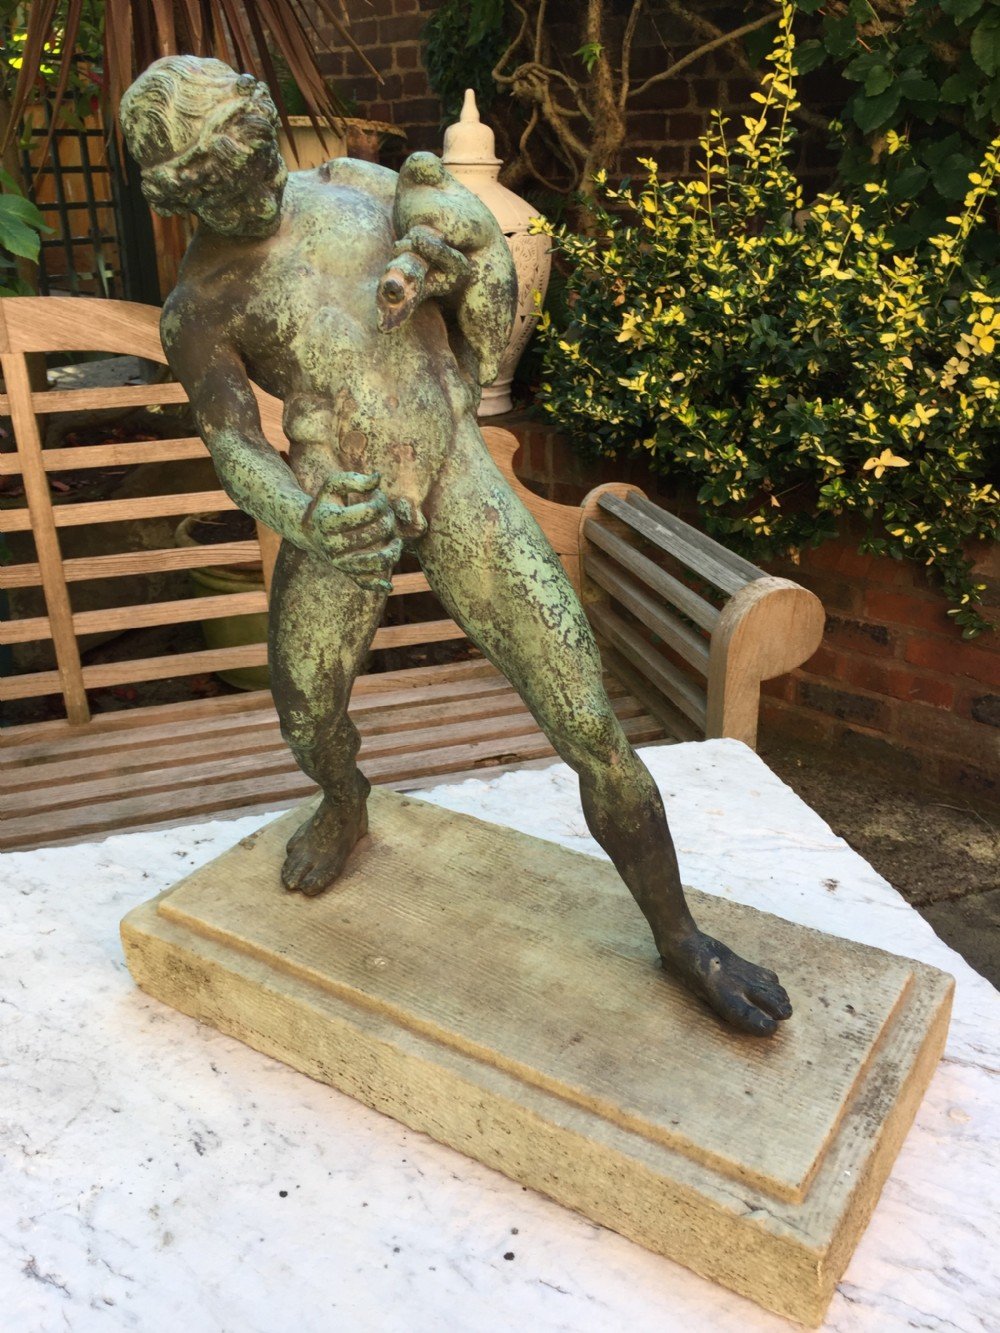 large late c19th italian 'grand tour' souvenir bronze figure after the antique of the drunken faun of pompeii